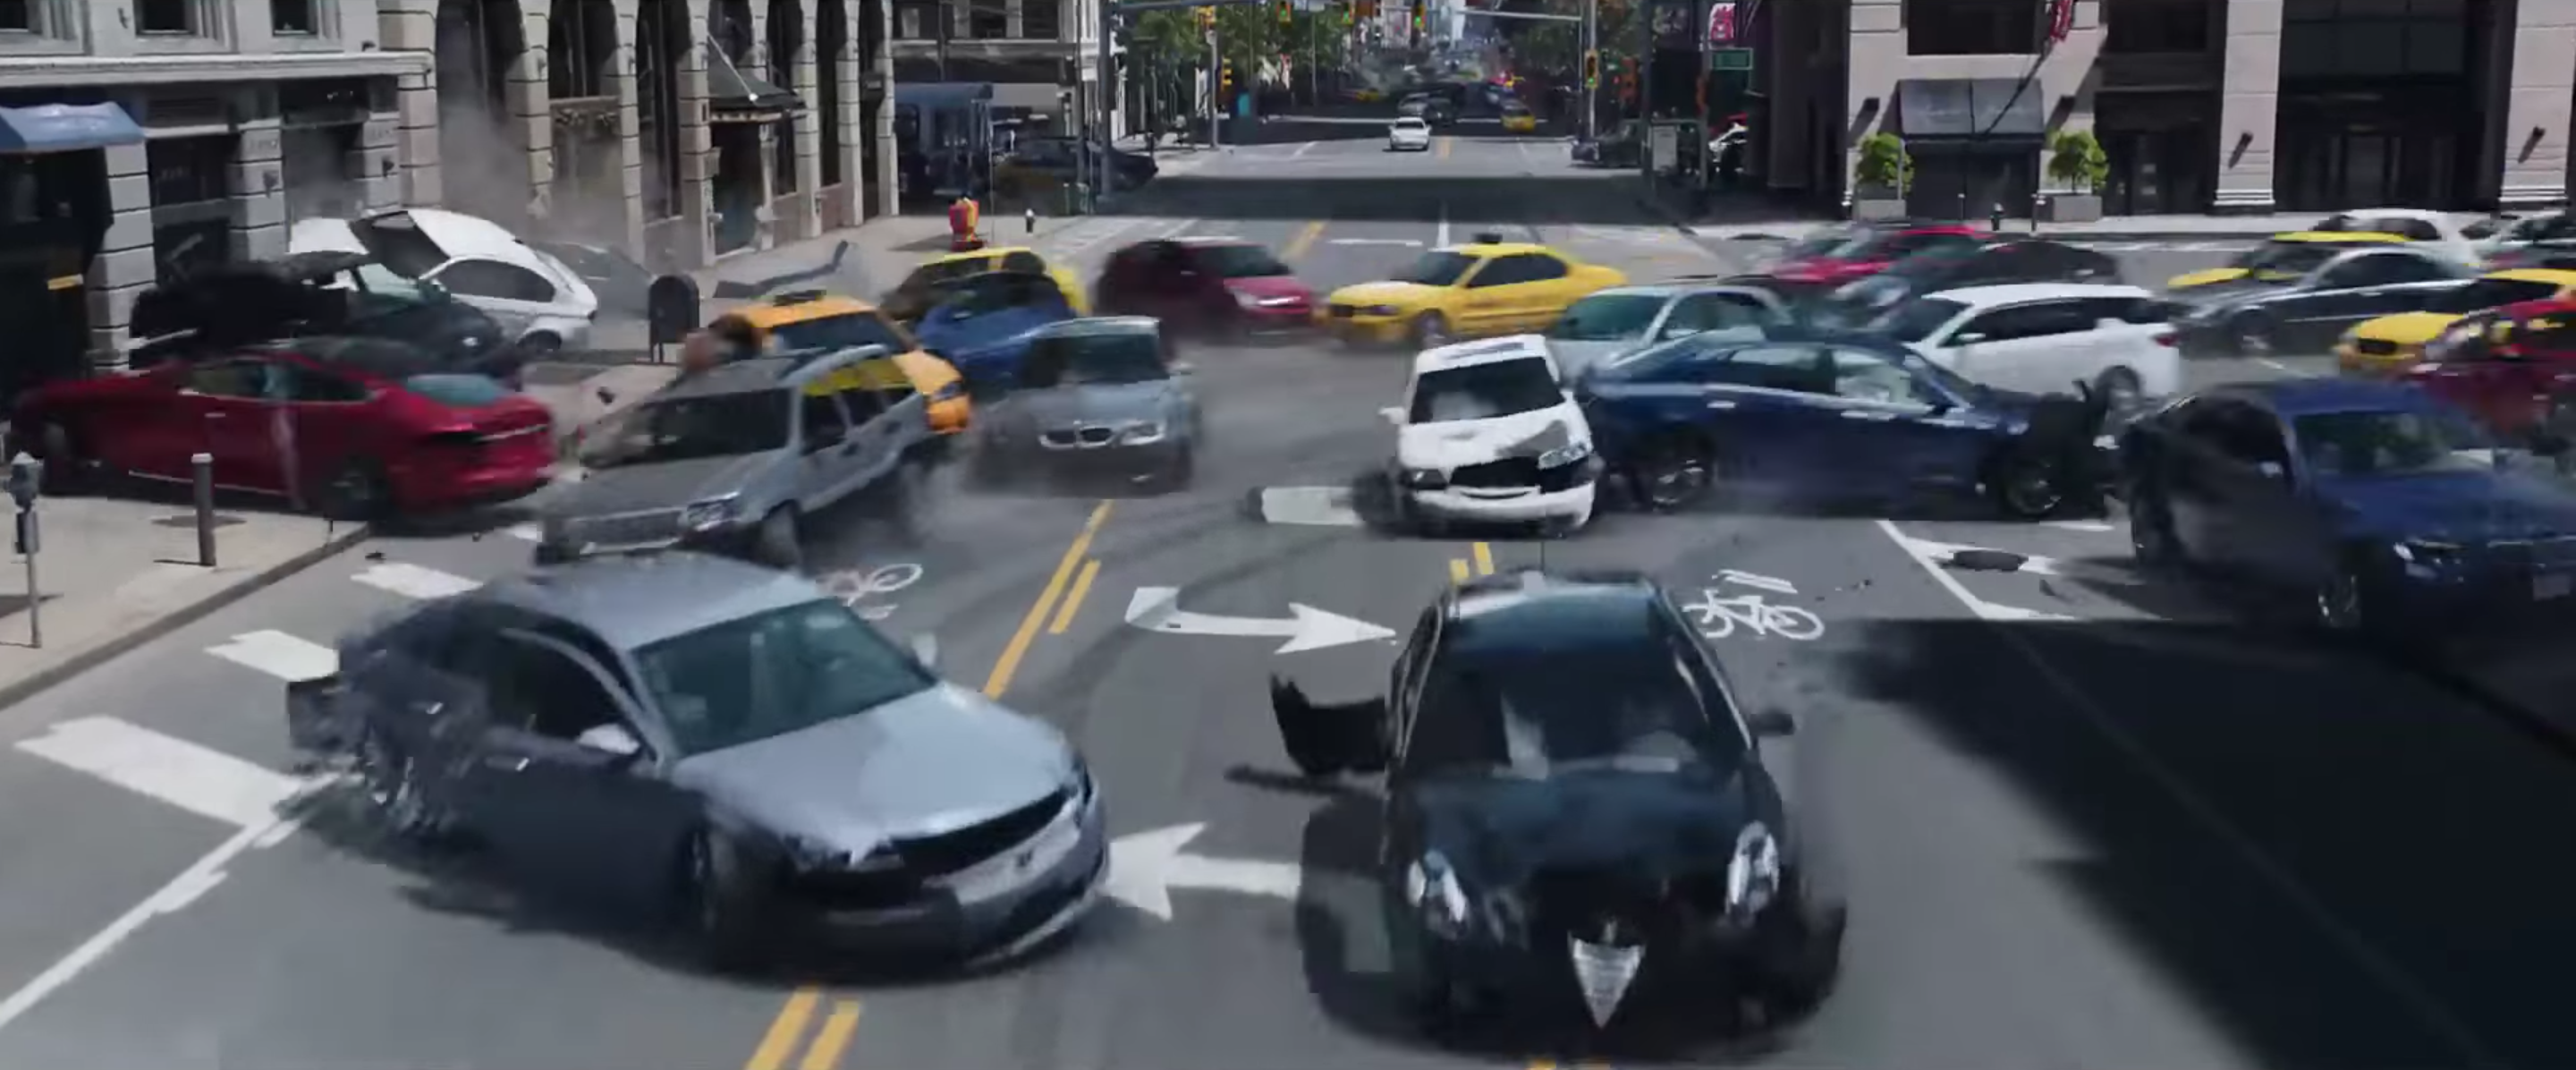 How the Car Hacking Scene in 'Fate of The Furious' Could